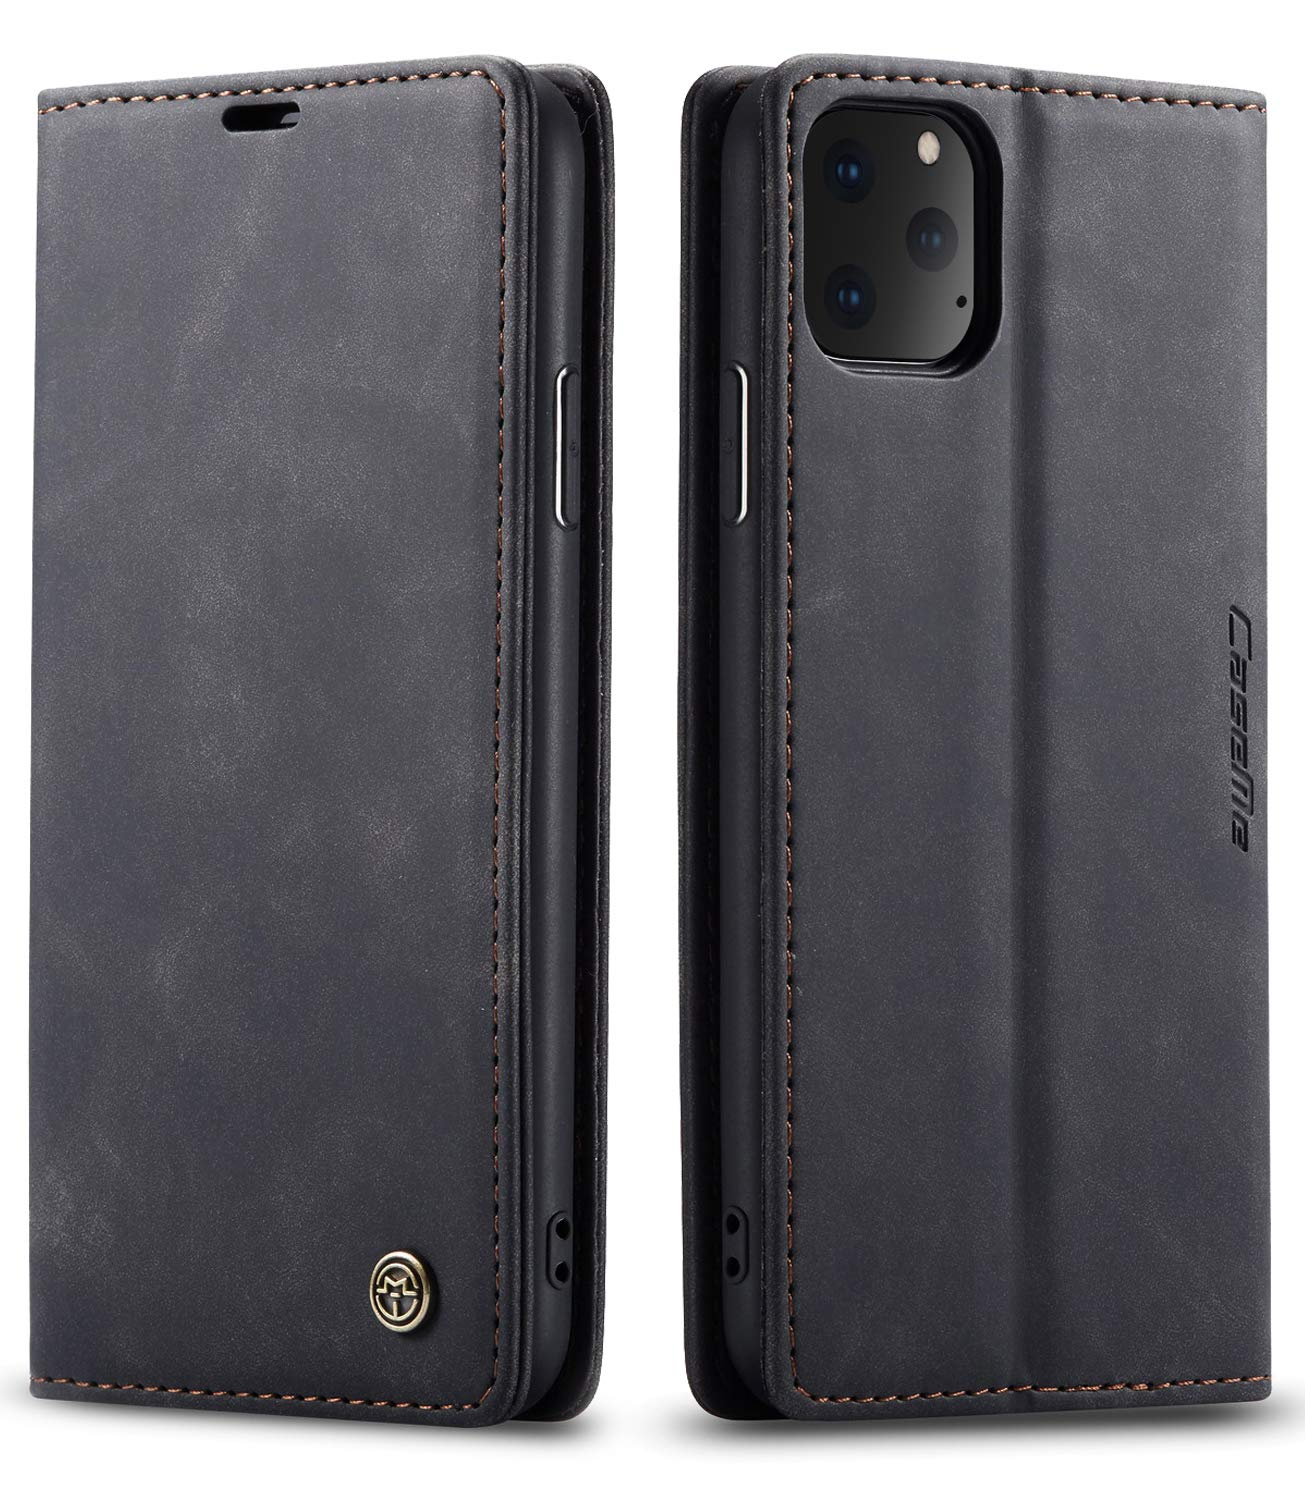 SINIANL iPhone 11 Pro Max Wallet Case iPhone 11 Pro Max Leather Case Book Folding Flip Case with Kickstand Credit Card Slot Magnetic Closure Protective Cover for iPhone 11 Pro Max 2019 6.5 - Black